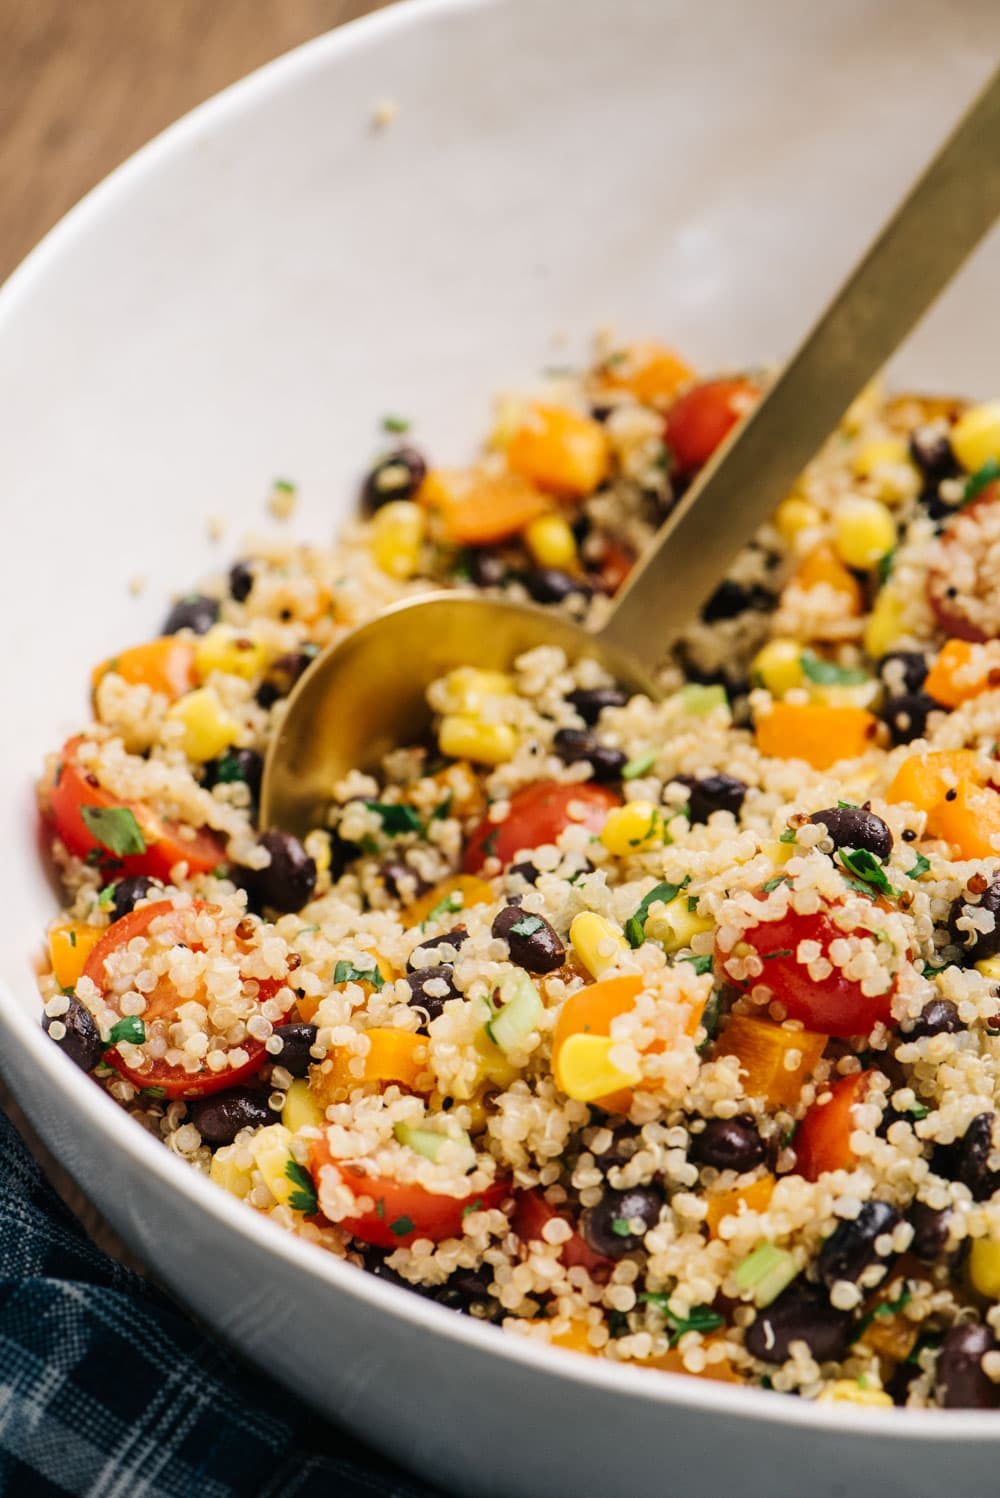 A large serving bowl of southwestern black bean quinoa salad with a gold serving spoon.